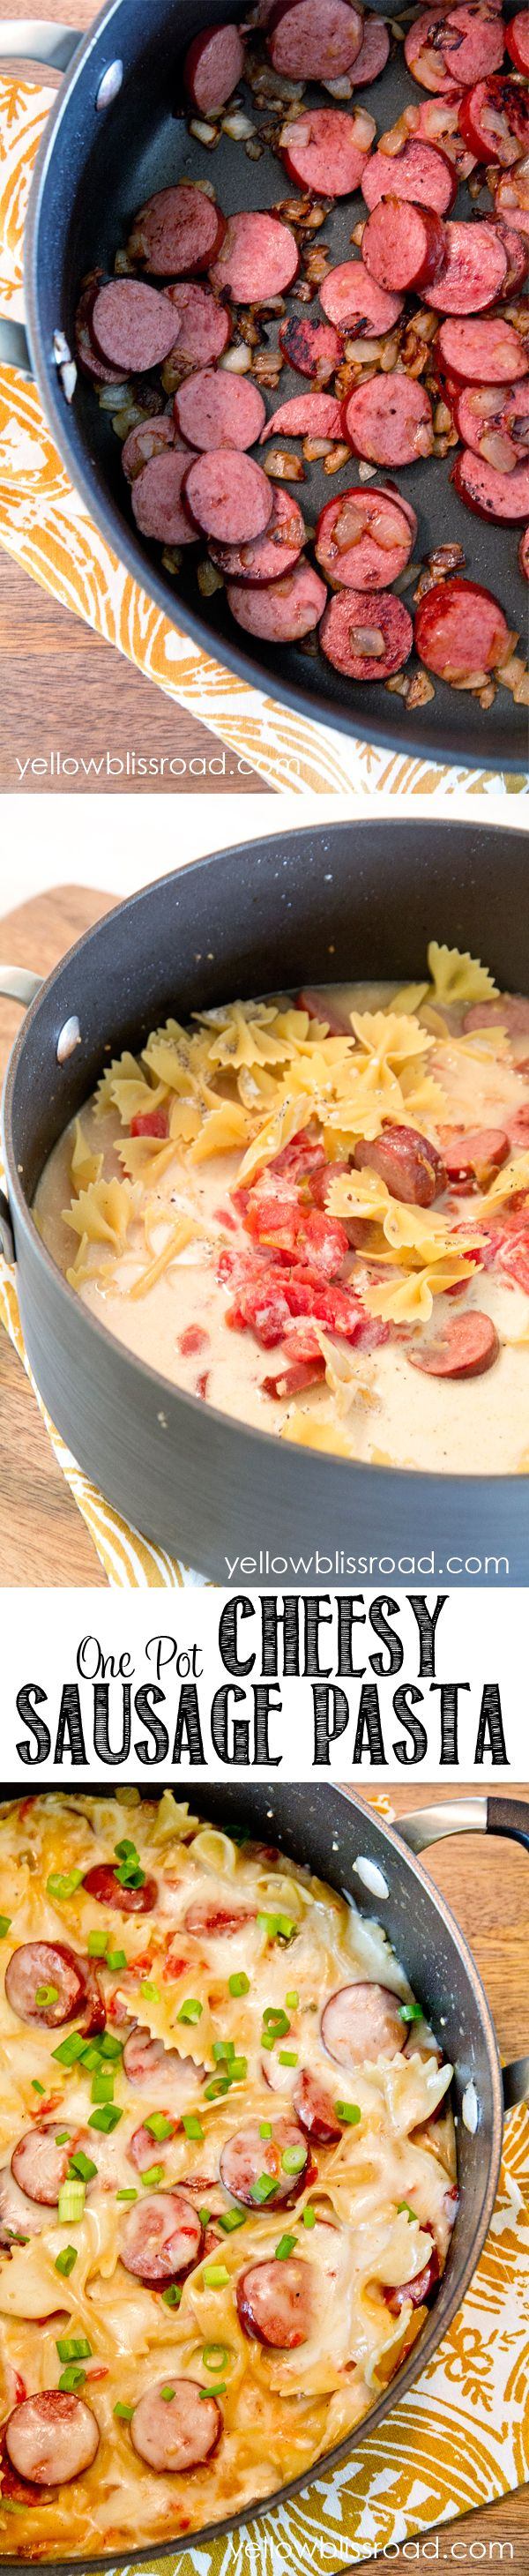 One Pot Cheesy Smoked Sausage